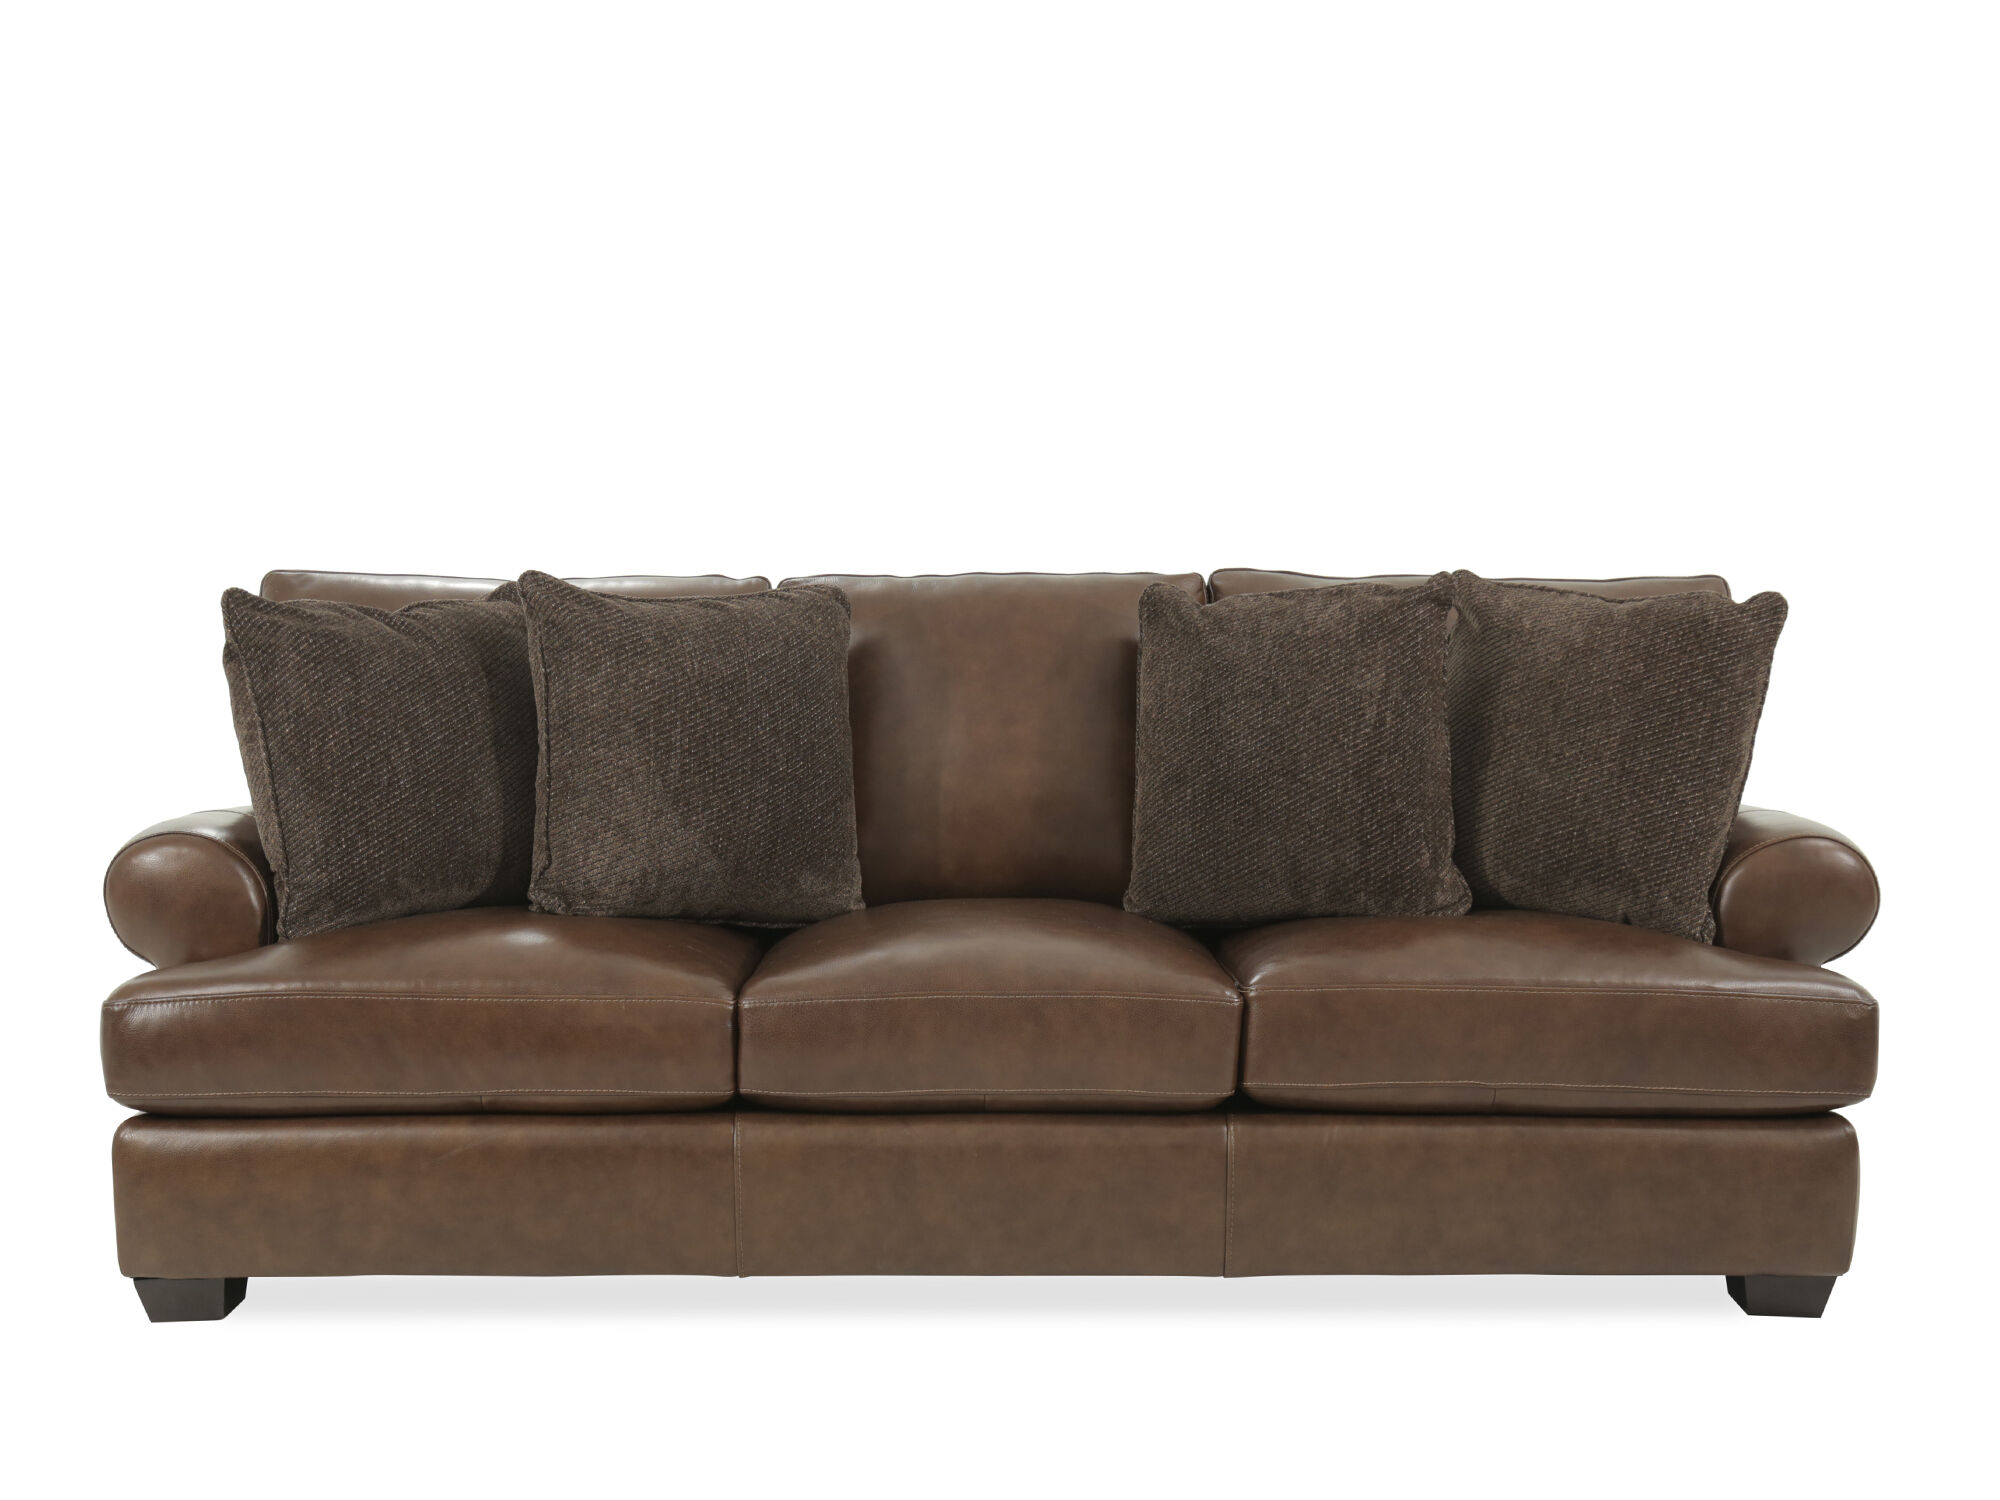 Bernhardt Leather Chair Bernhardt Tyson Brown Leather Sofa Mathis Brothers Furniture